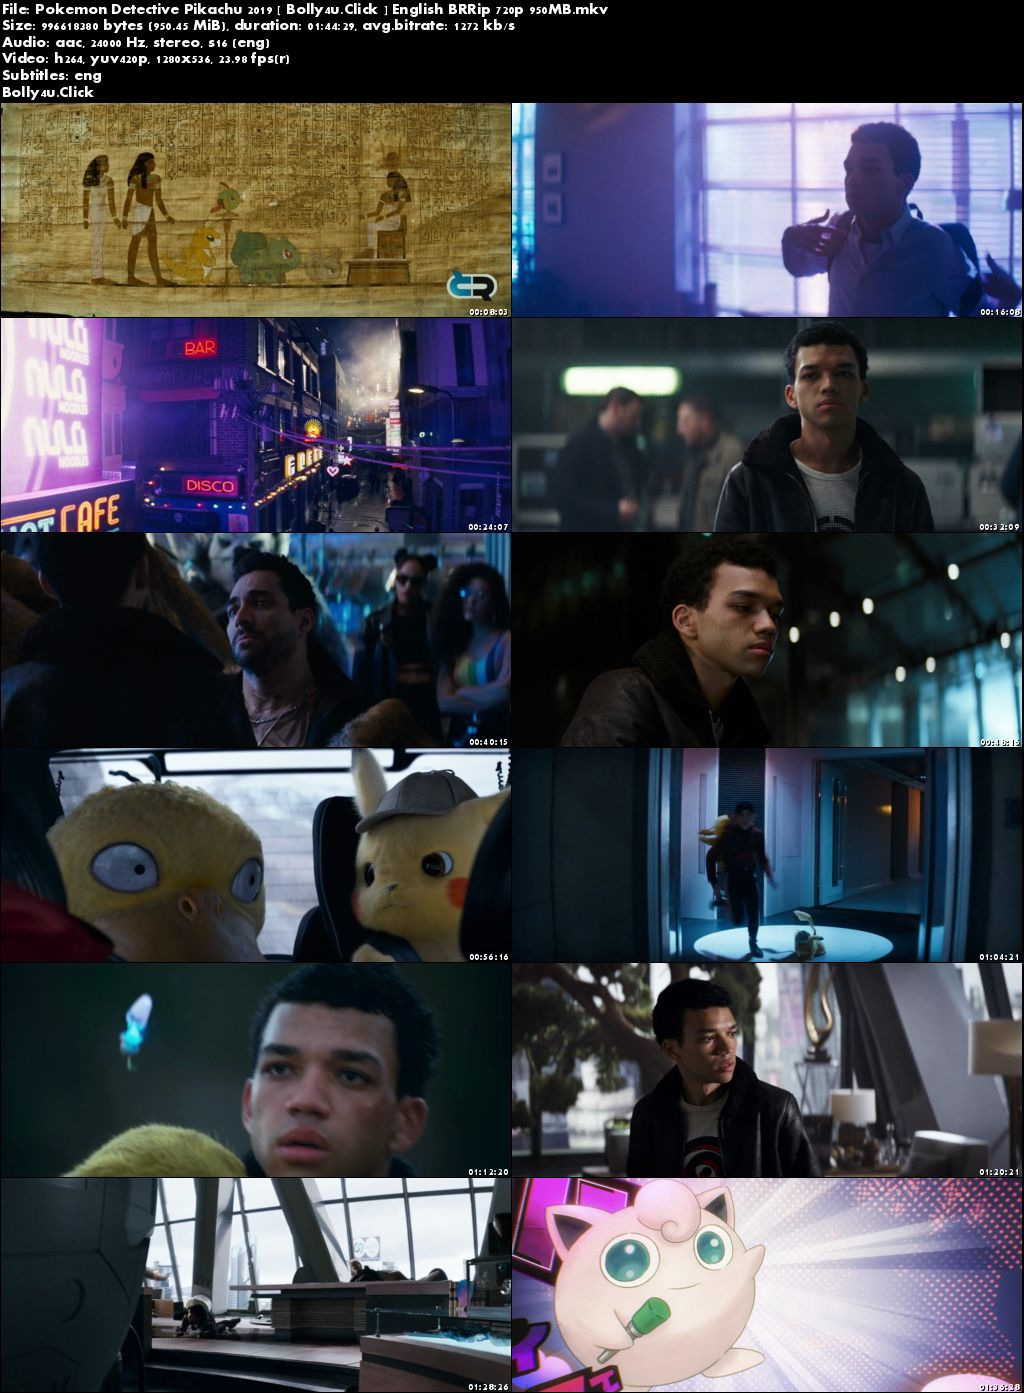 Pokemon Detective Pikachu 2019 BRRip 950Mb English 720p ESub Download